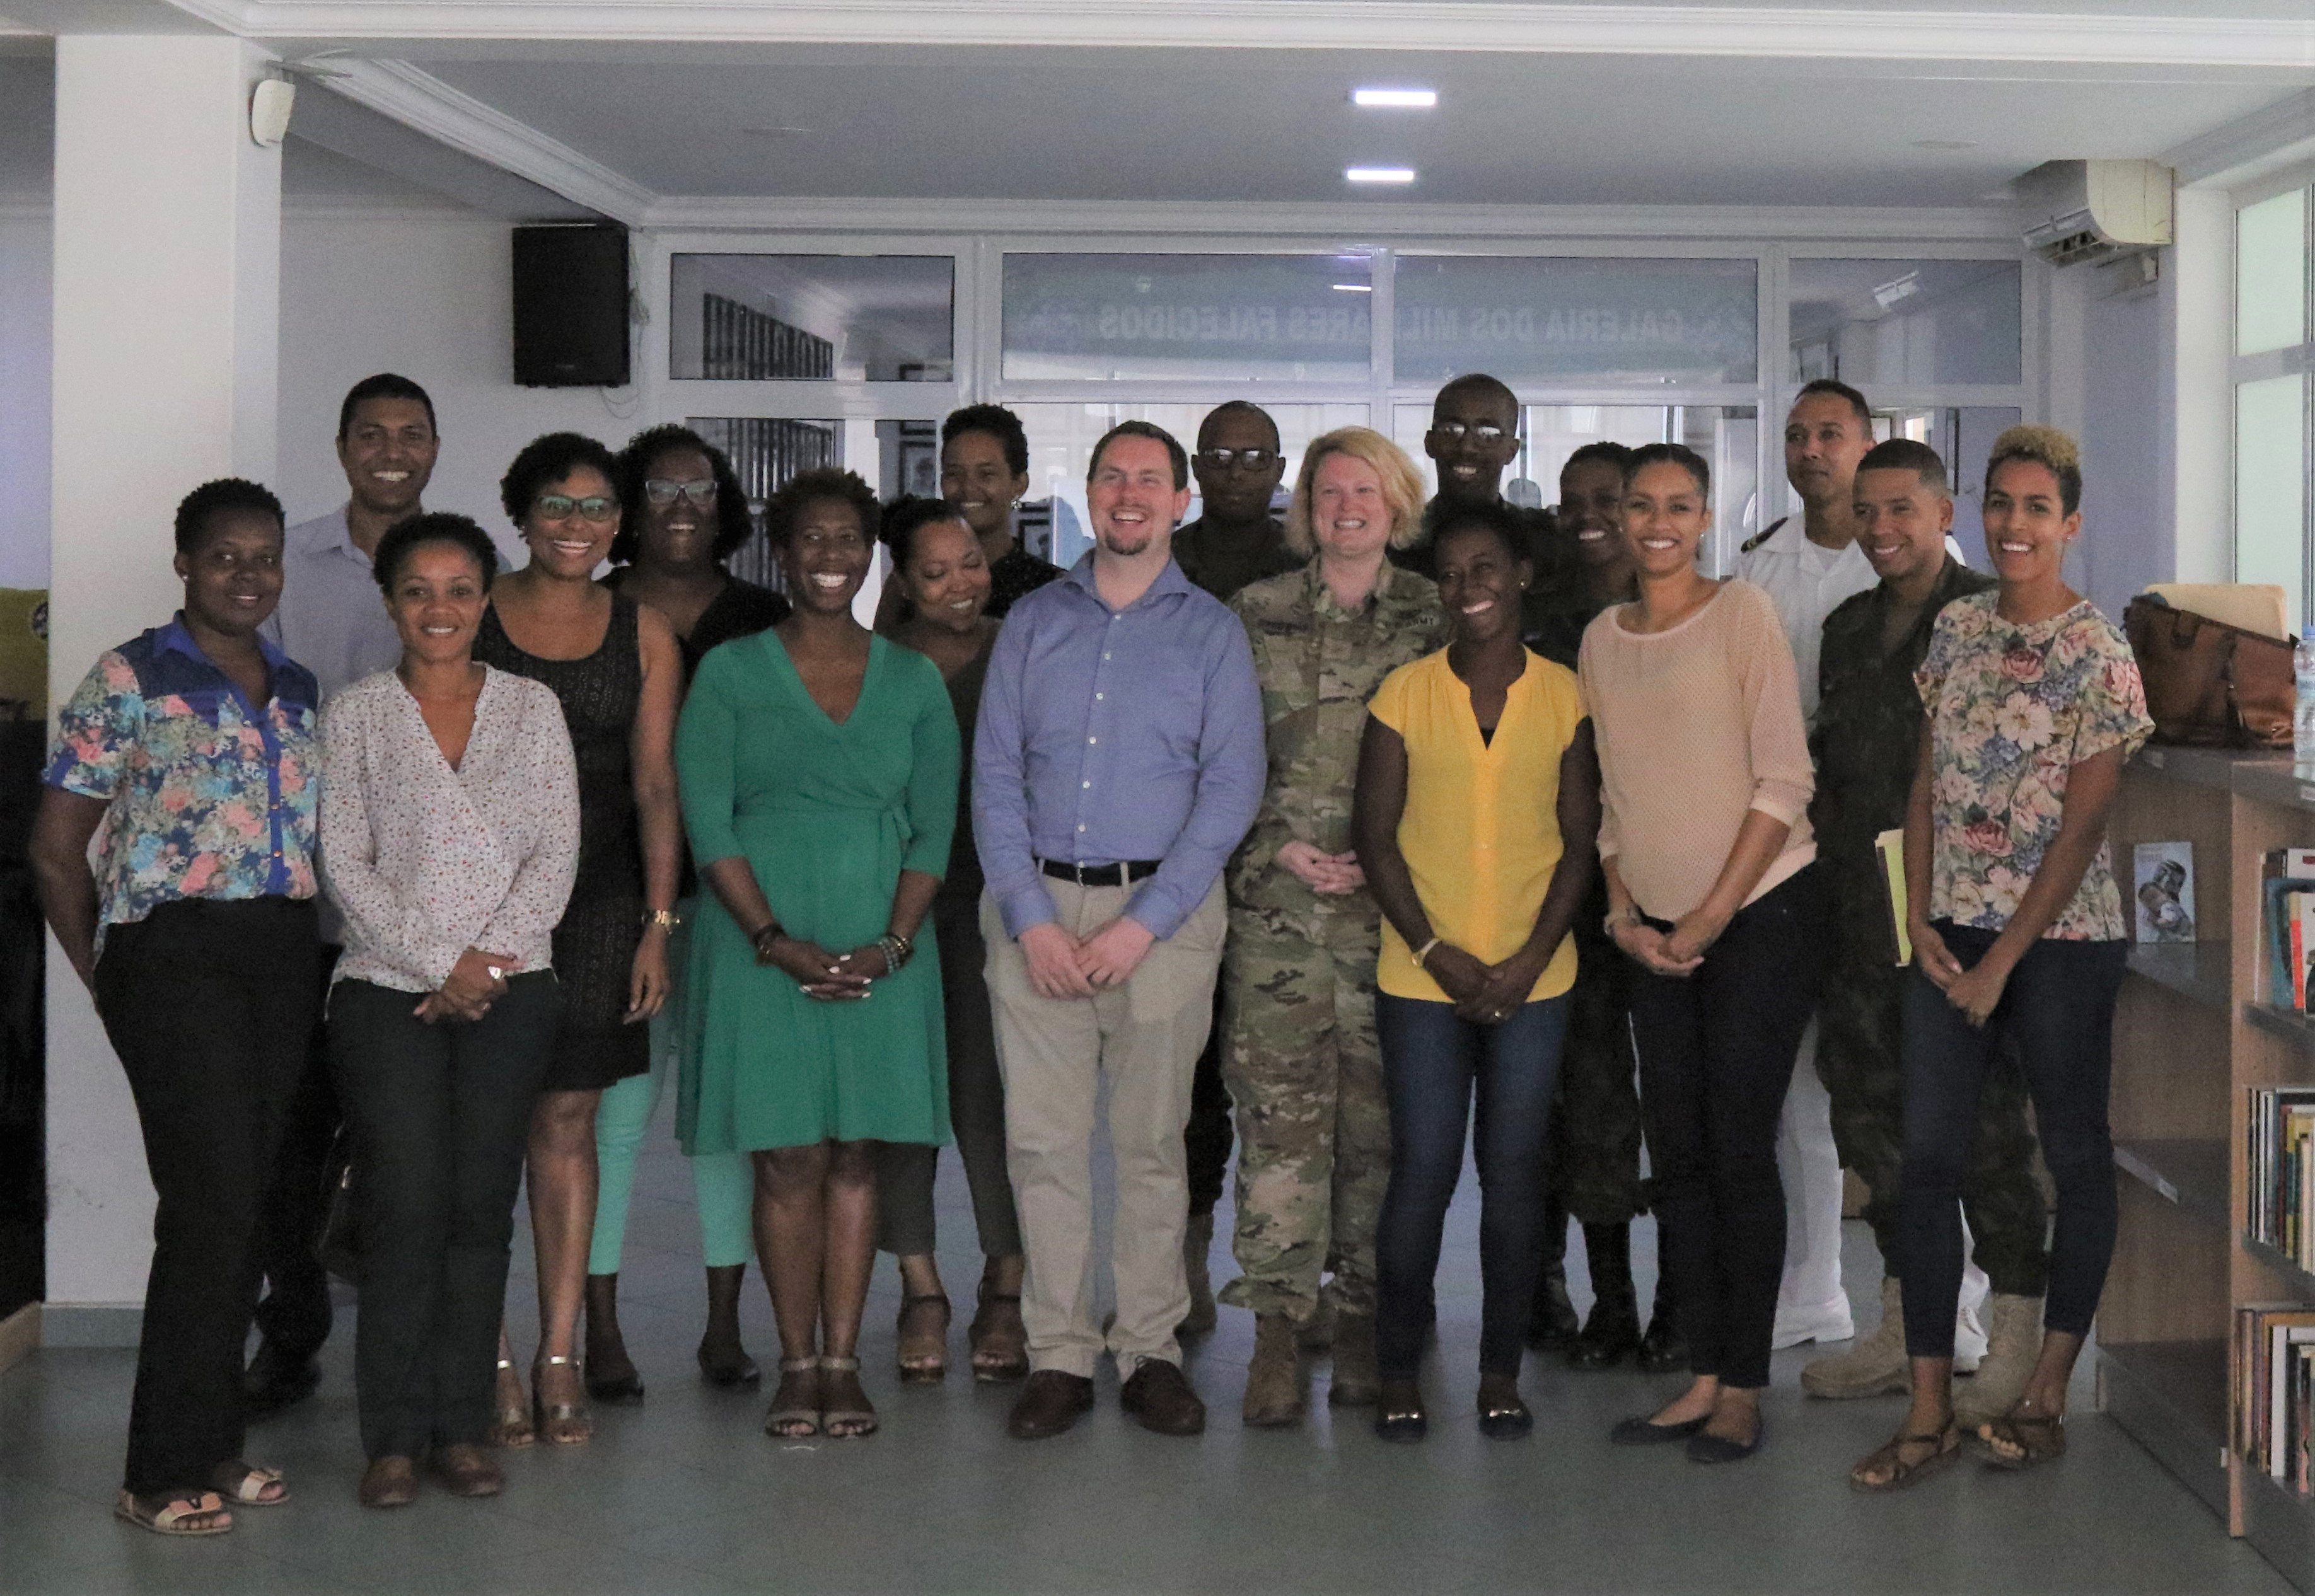 PRAIA, Cabo Verde – Participants pose for a group photo during the public affairs information exchange held in Praia, Cabo Verde June 25-29, 2018.